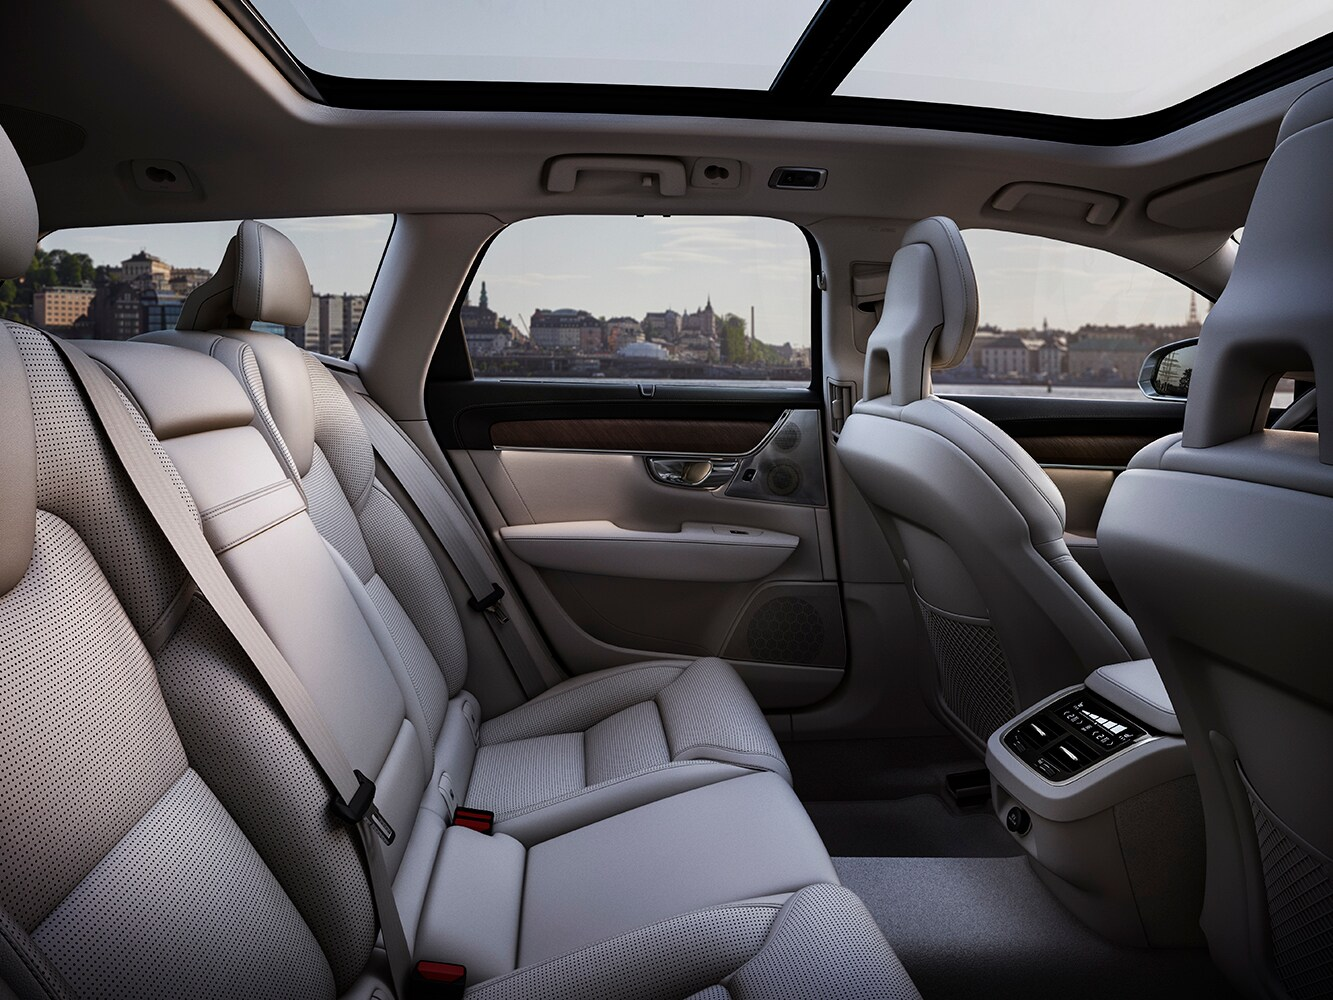 Interior view of generous seating space in the Volvo V90